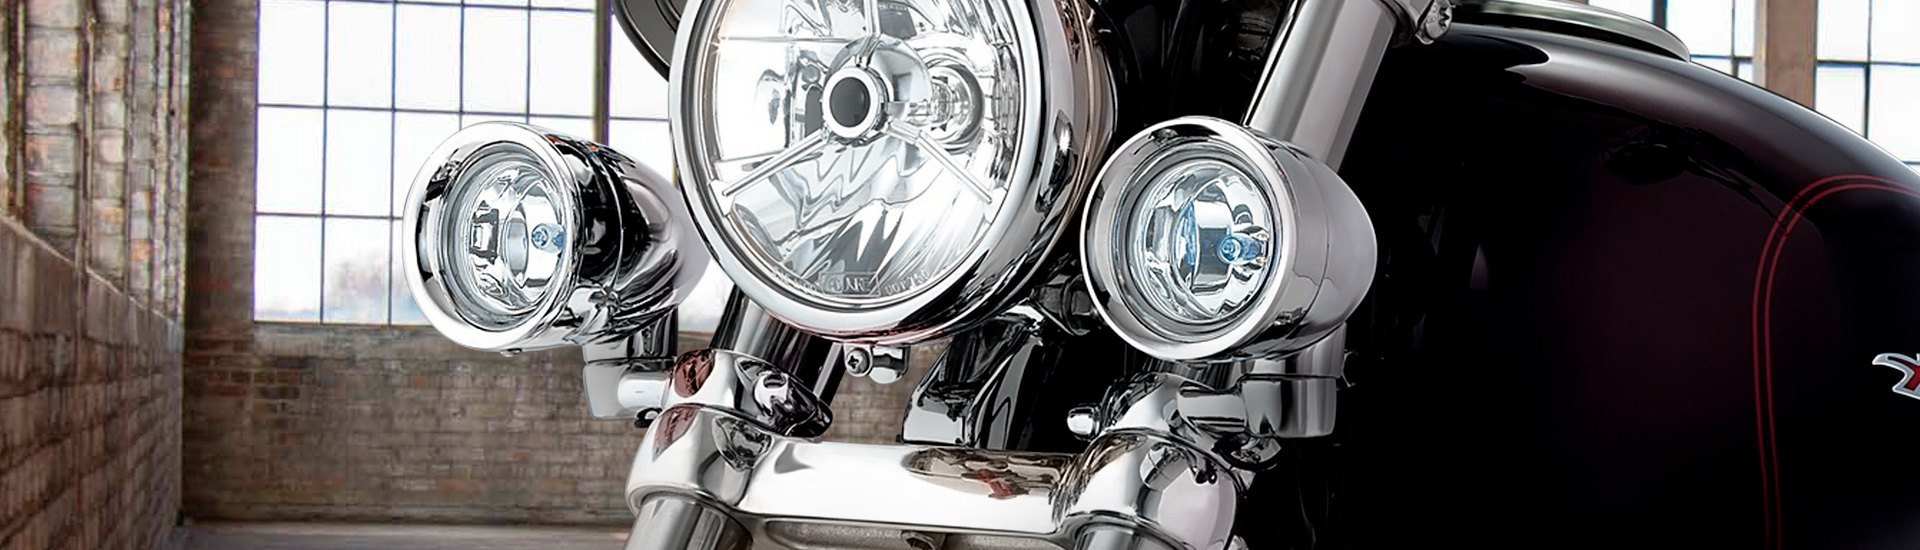 Yamaha Motorcycle Auxiliary Lights Light Bars Amp Kits